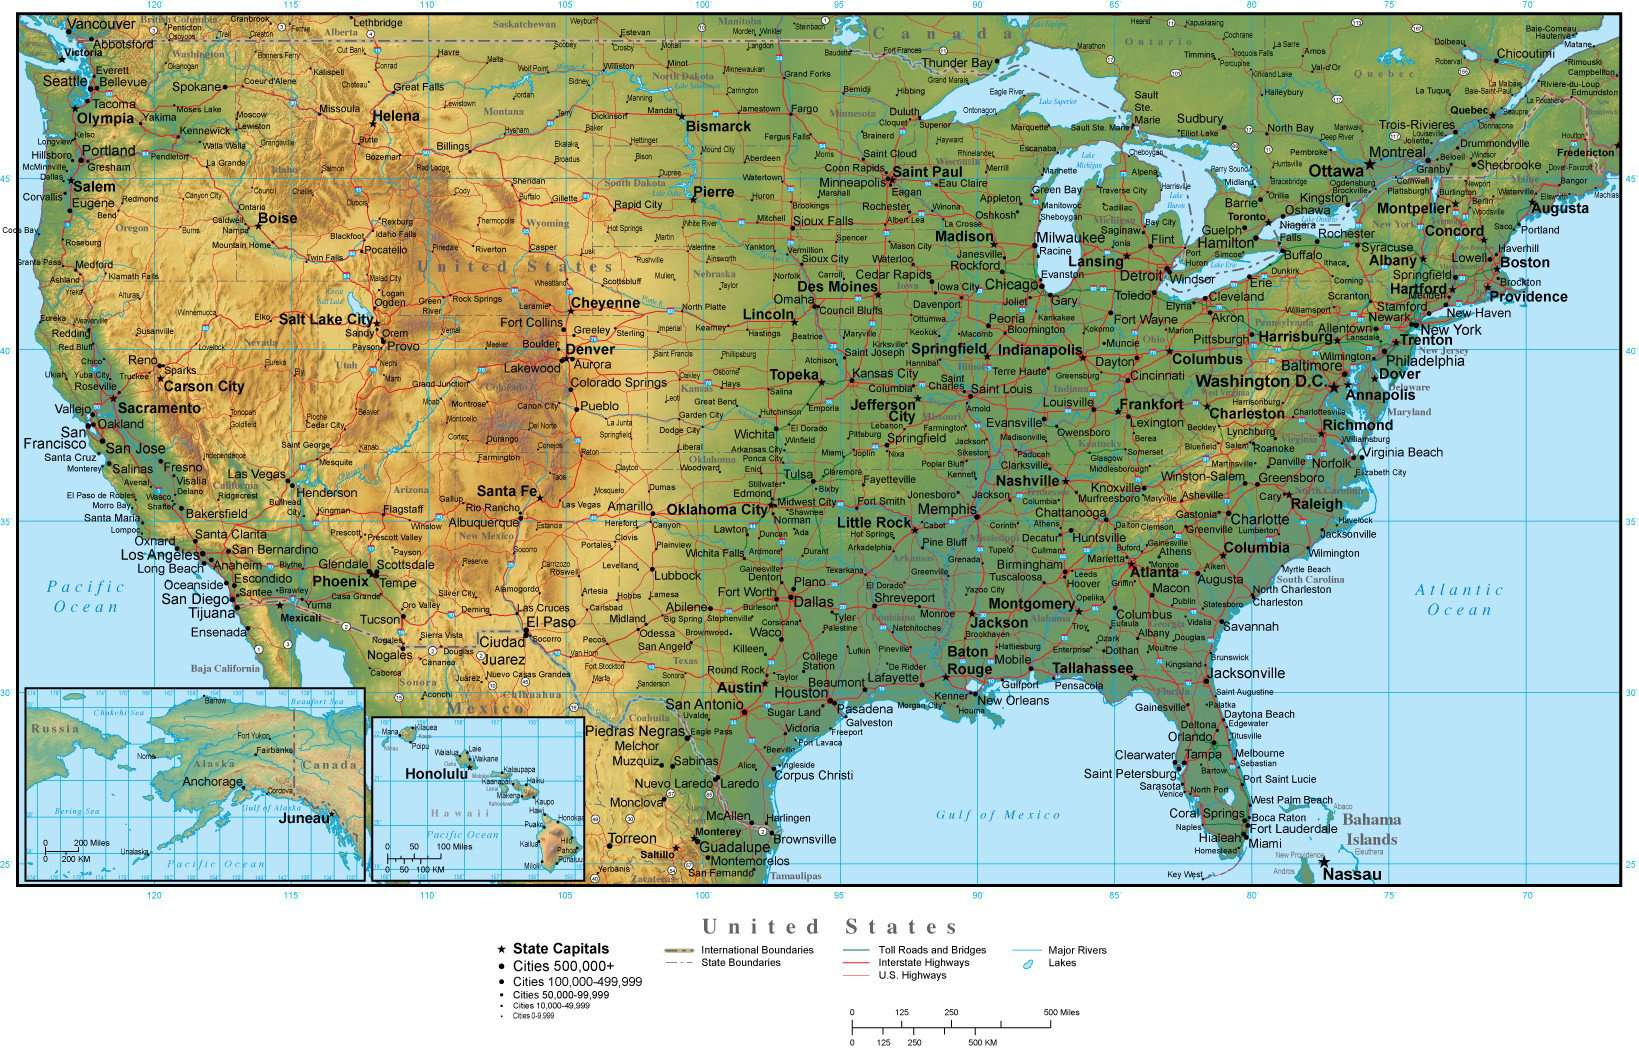 Digital Usa Terrain Map In Adobe Illustrator Vector Format With